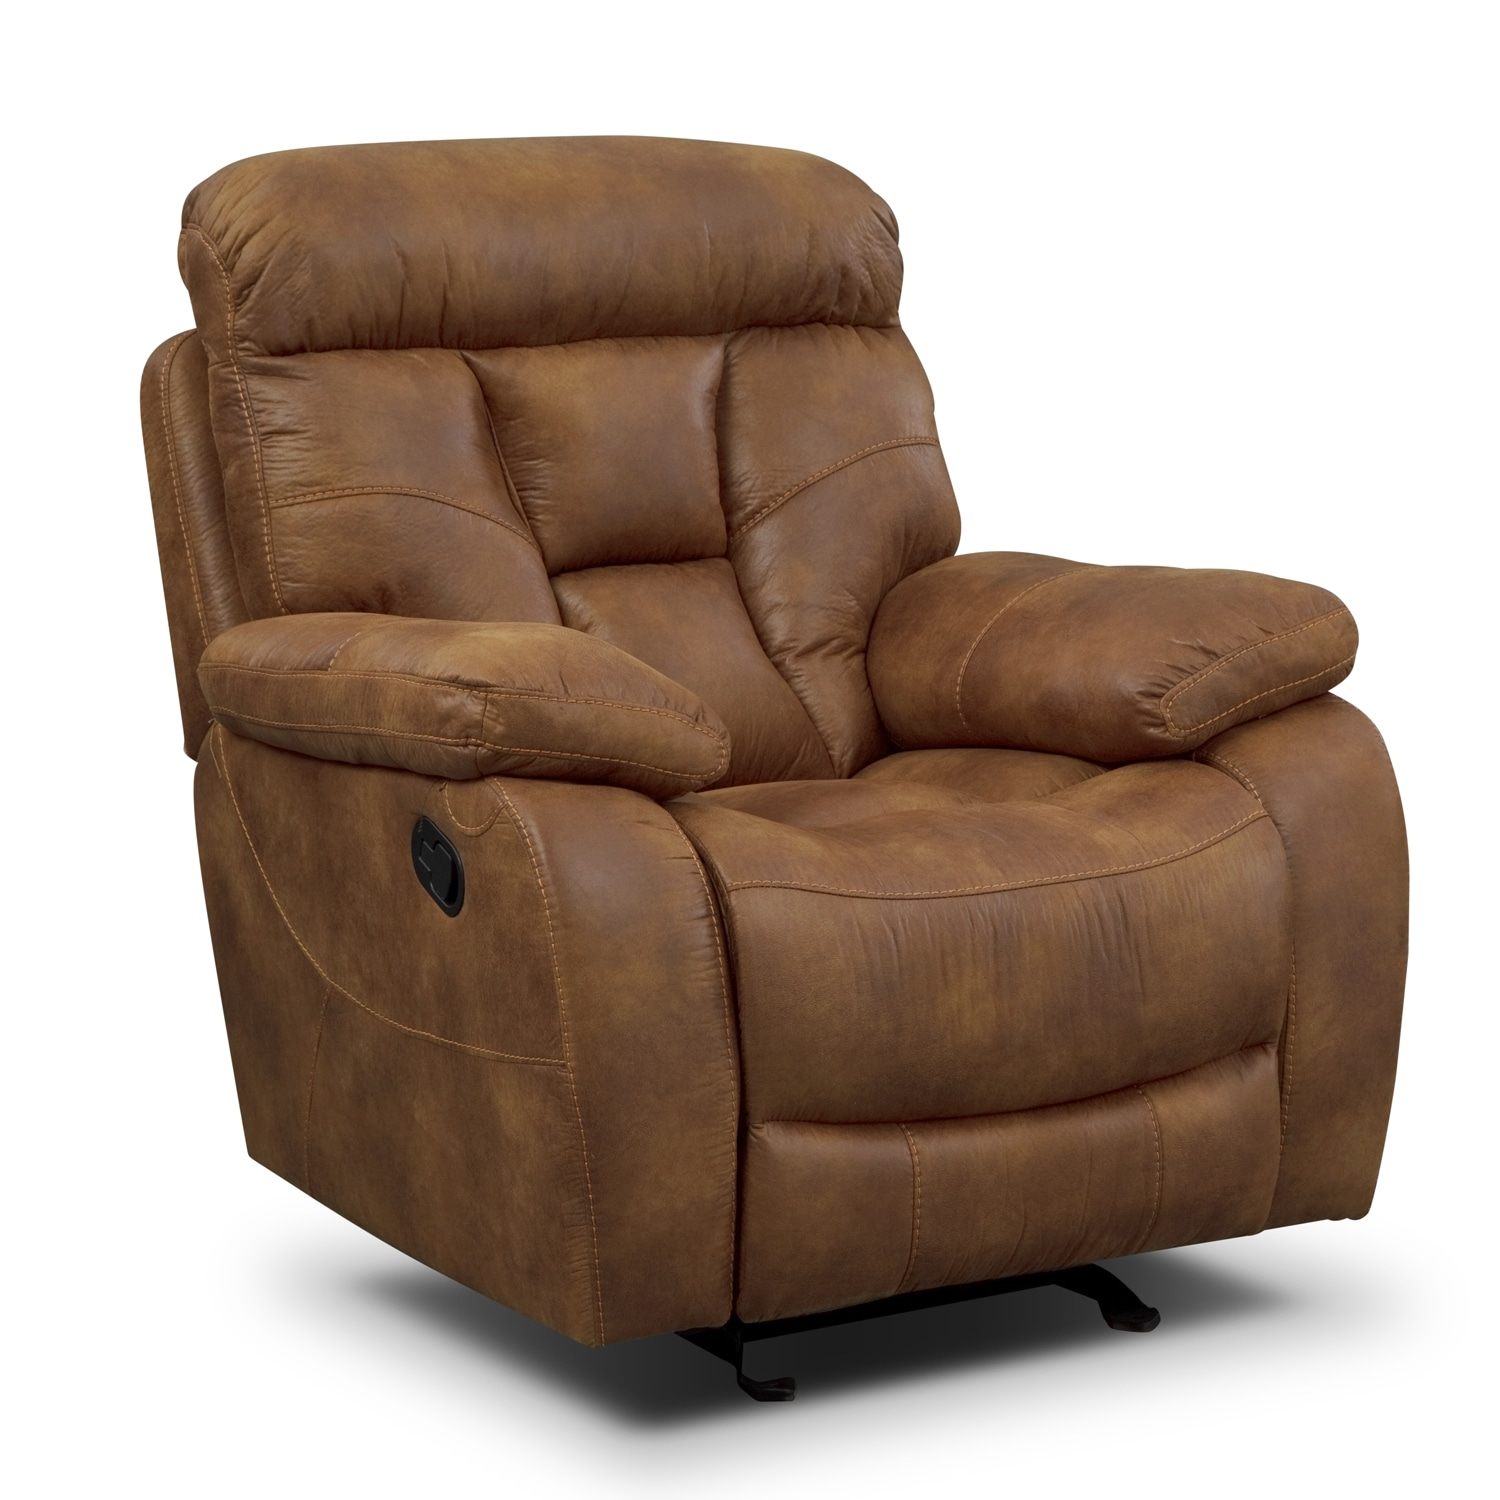 Dakota II Glider Recliner